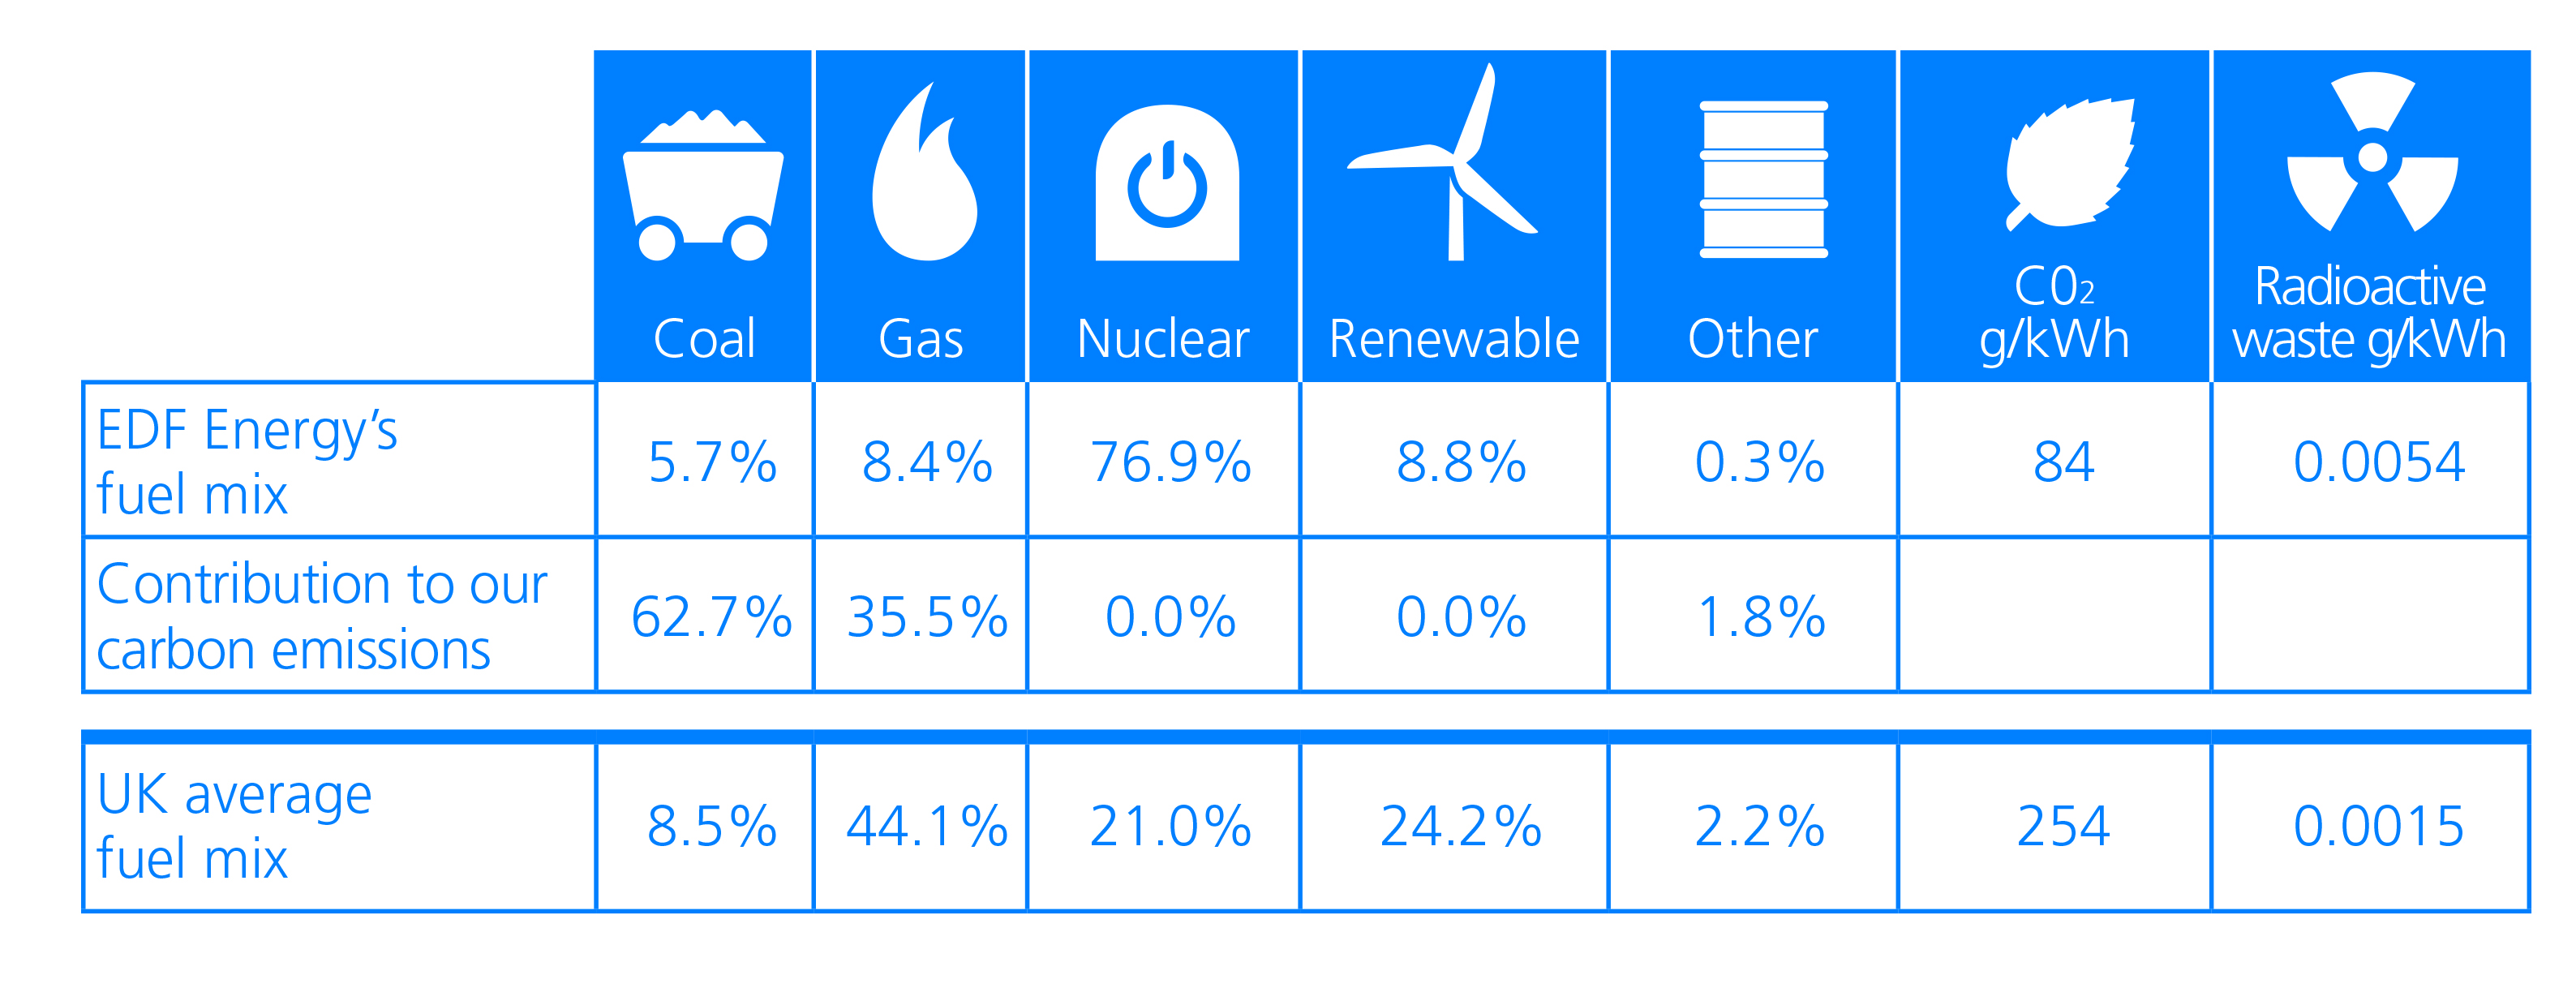 EDF Energy's Fuel Mix